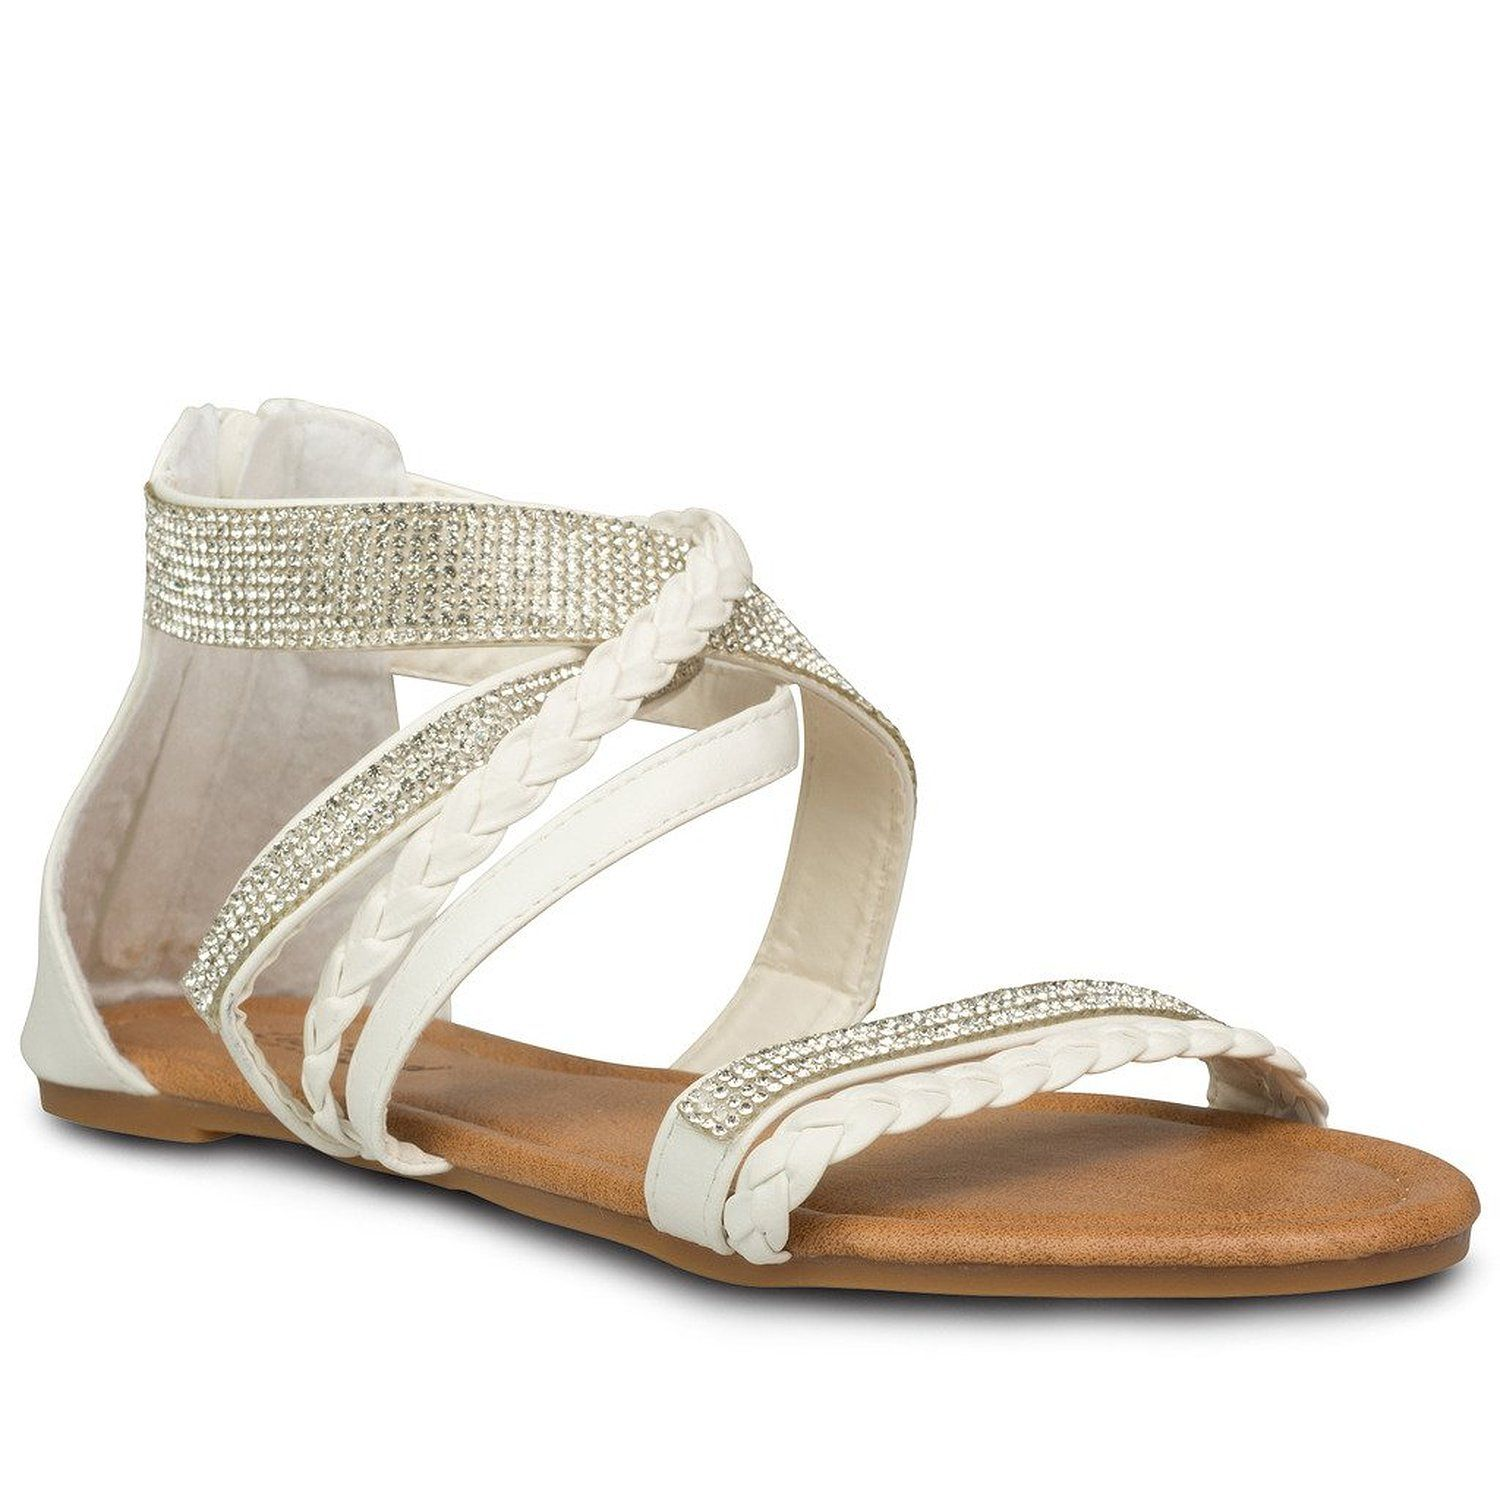 0f76fb7bb Amazon.com  Twisted Women s Daisy Faux Leather T-strap Sandal with Rhinestone  Accents  Clothing